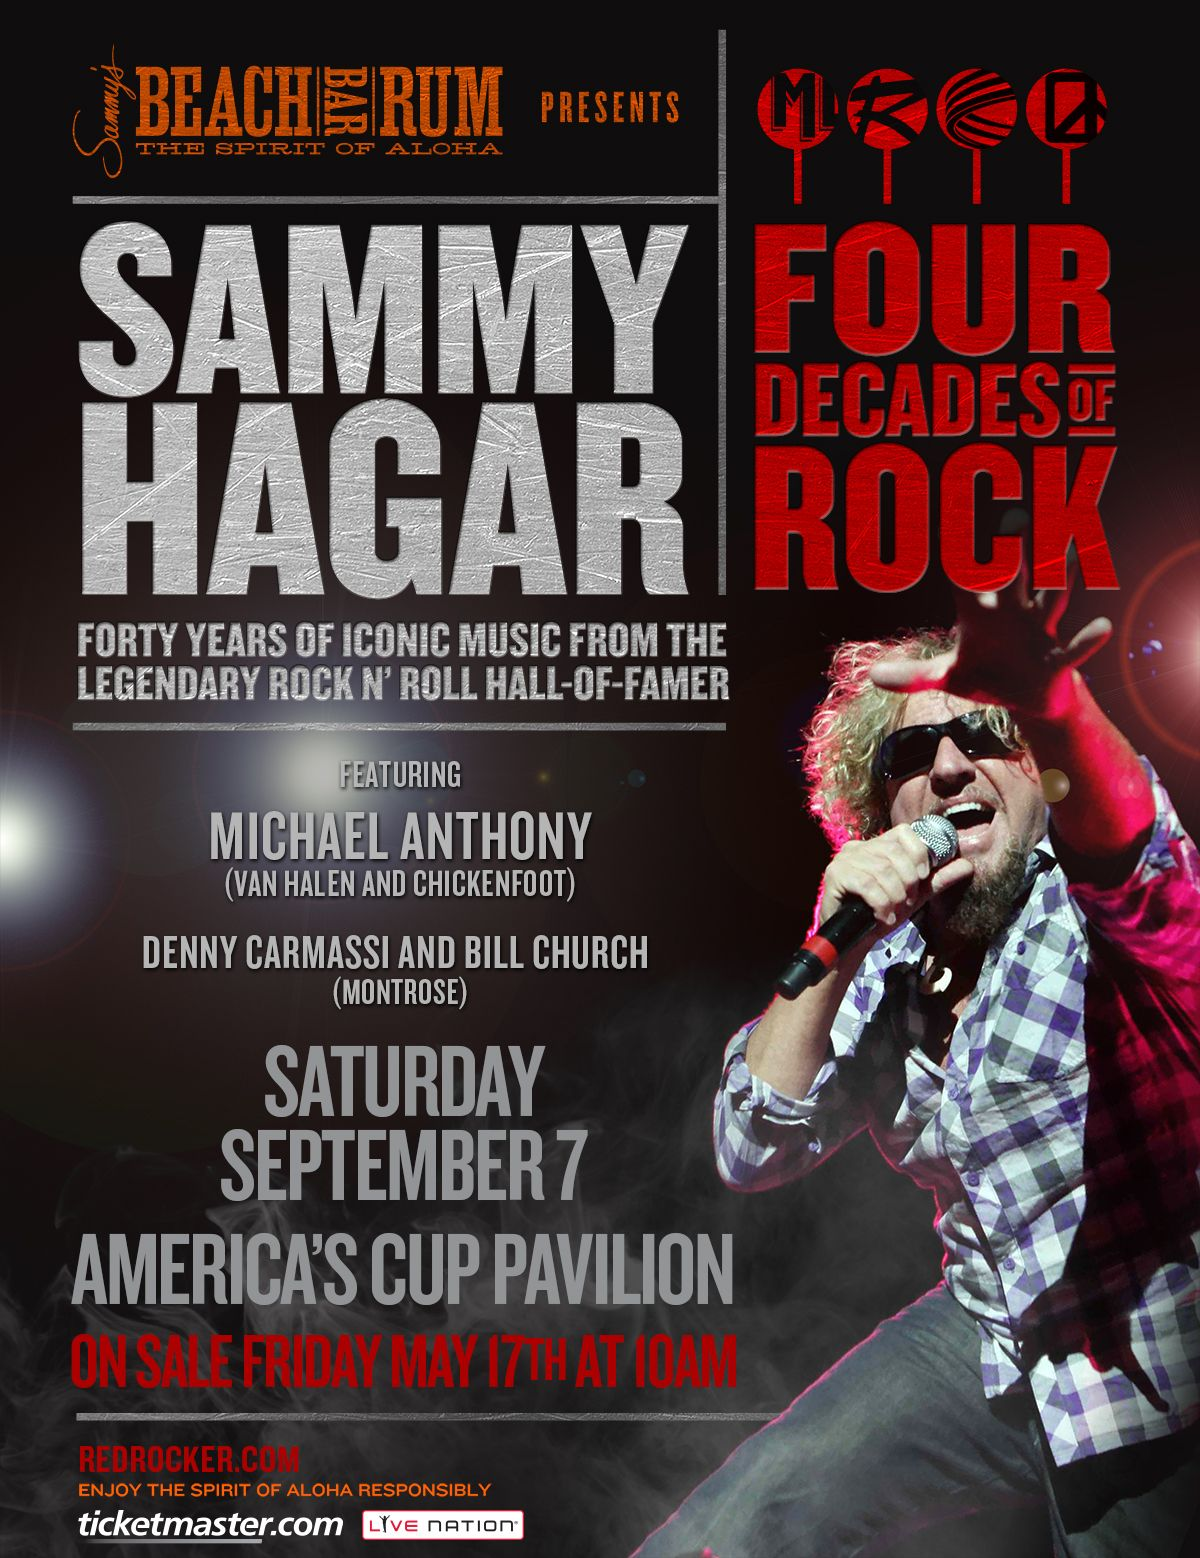 Sammy Hagar Celebrates Four Decades Of Rock At America S Cup Pavilion On Saturday September 7th Rock And Roll Fantasy Concert Posters Band Posters